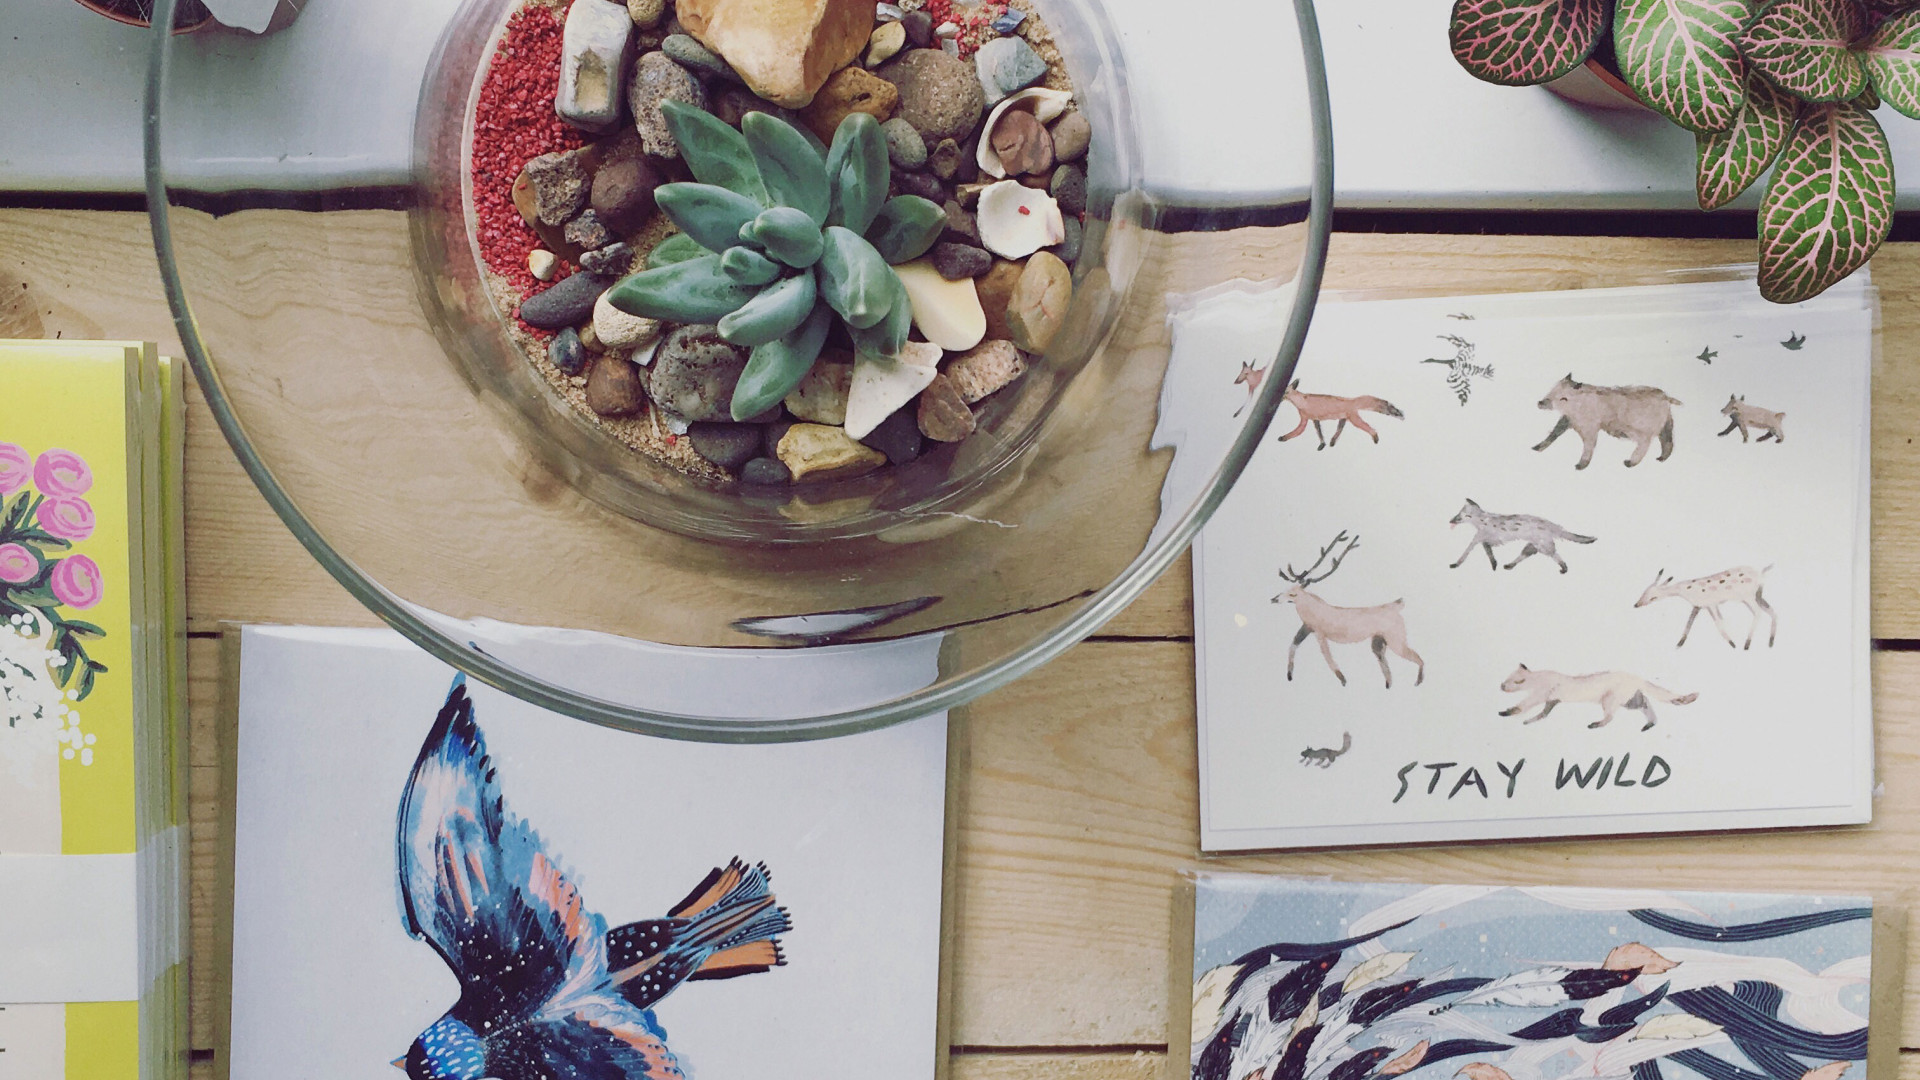 Plants and cards at NGNG design in Exeter